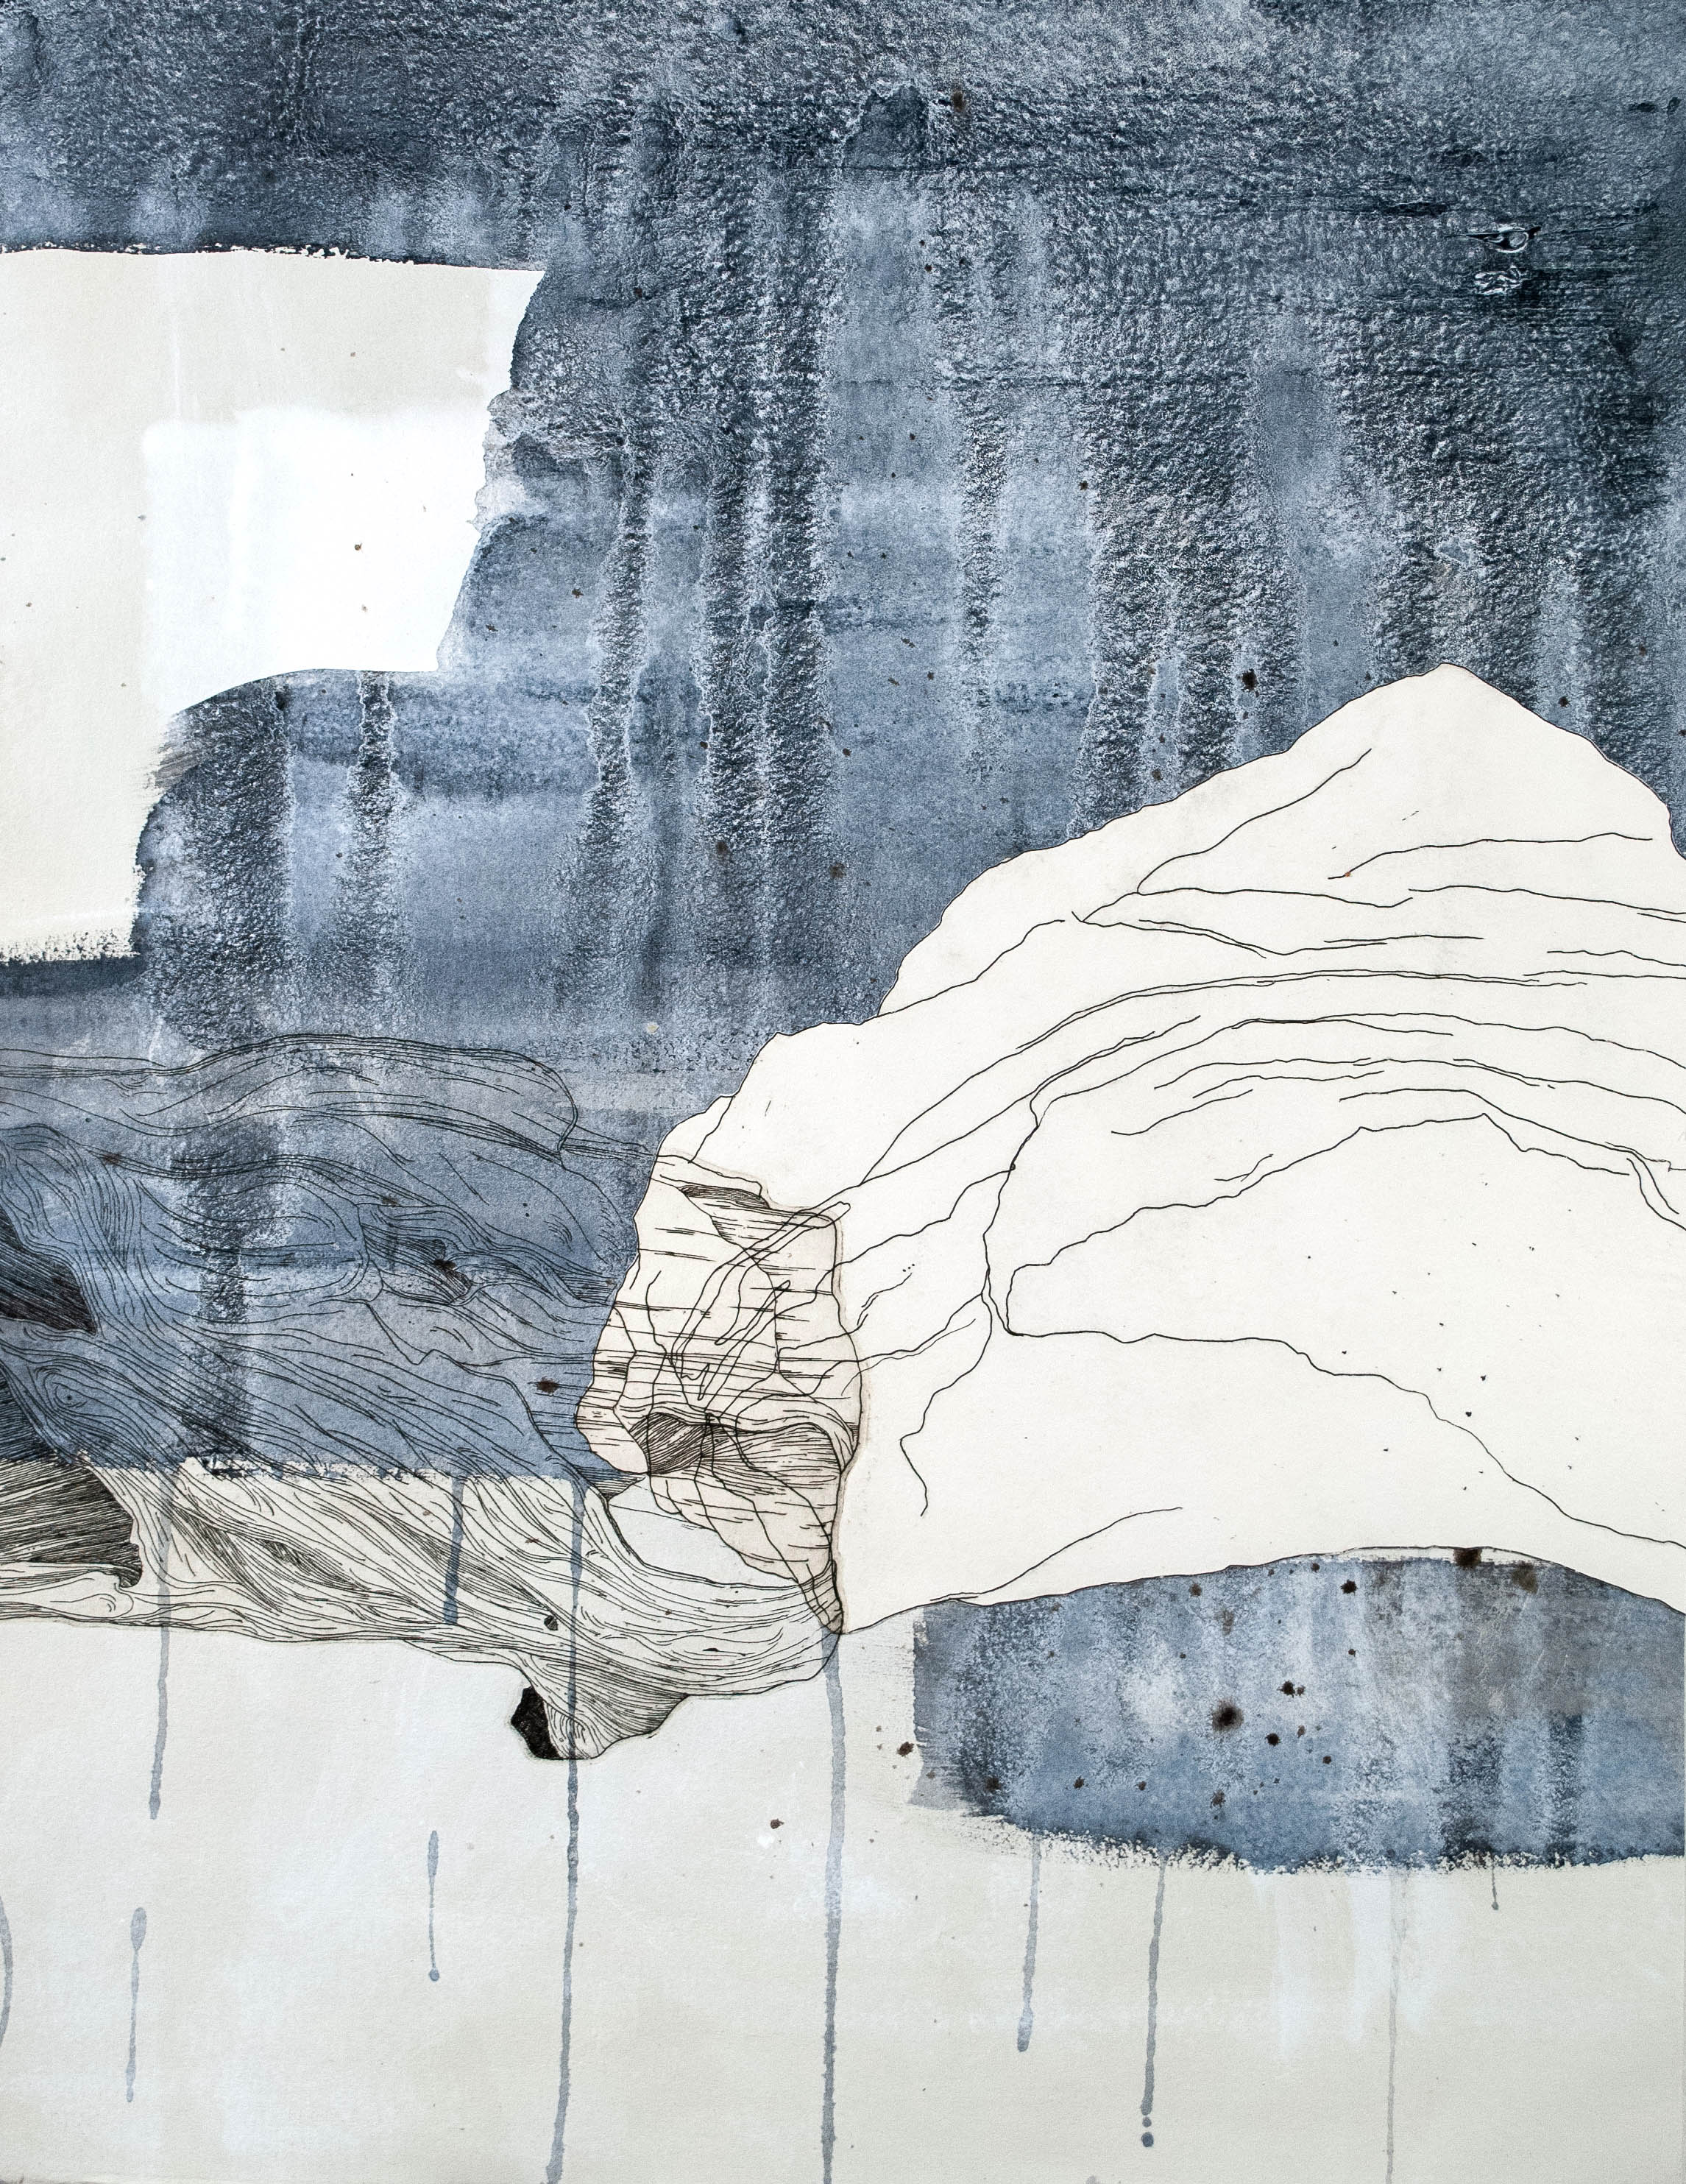 Cold Water   2018  Intaglio, Collage, Acrylic  14 x 18 in.